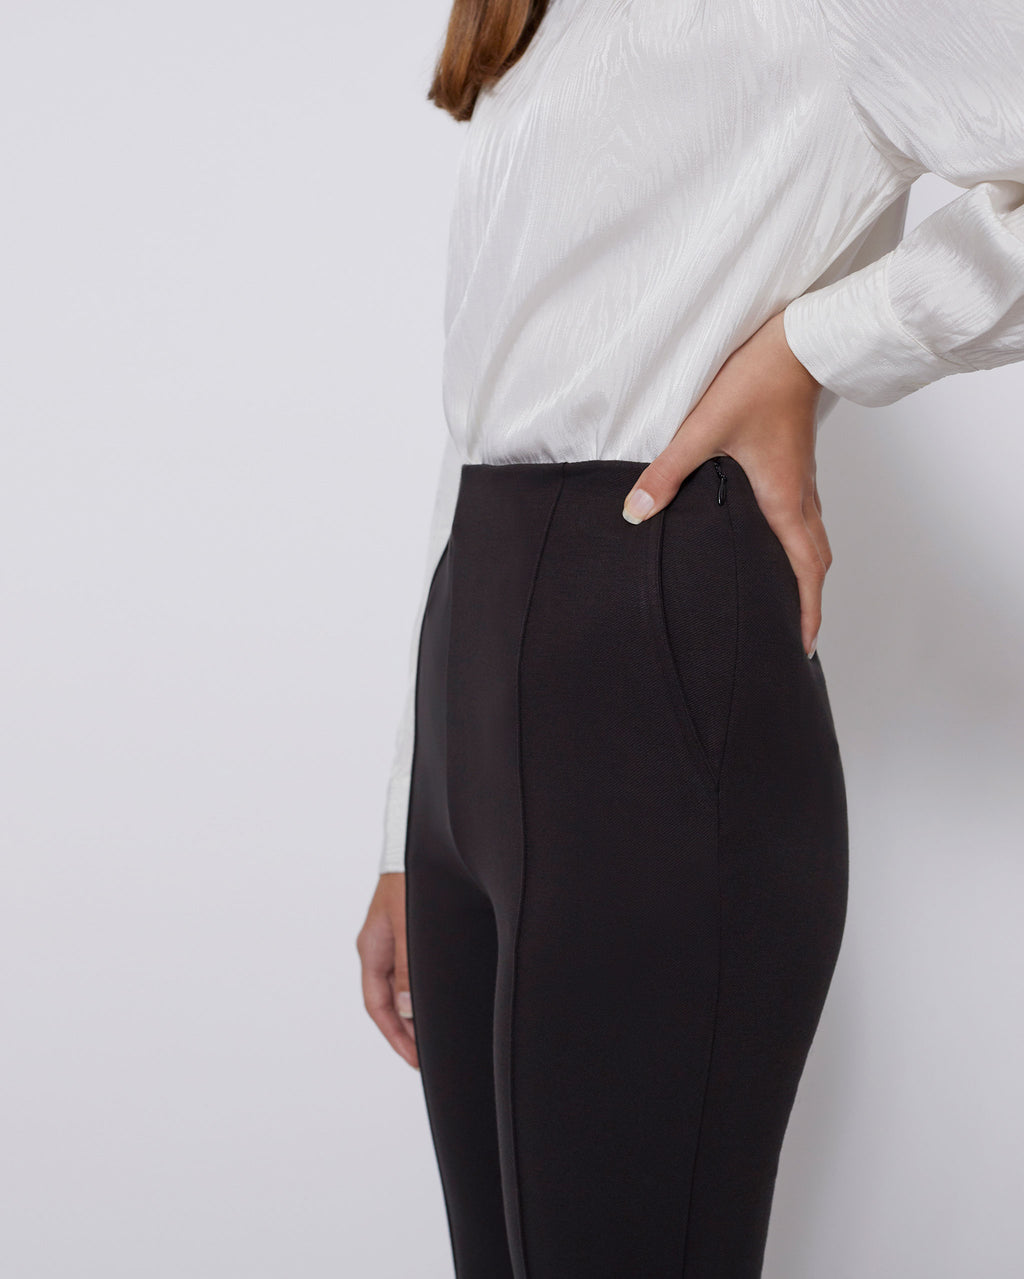 The Aria Pant in Black